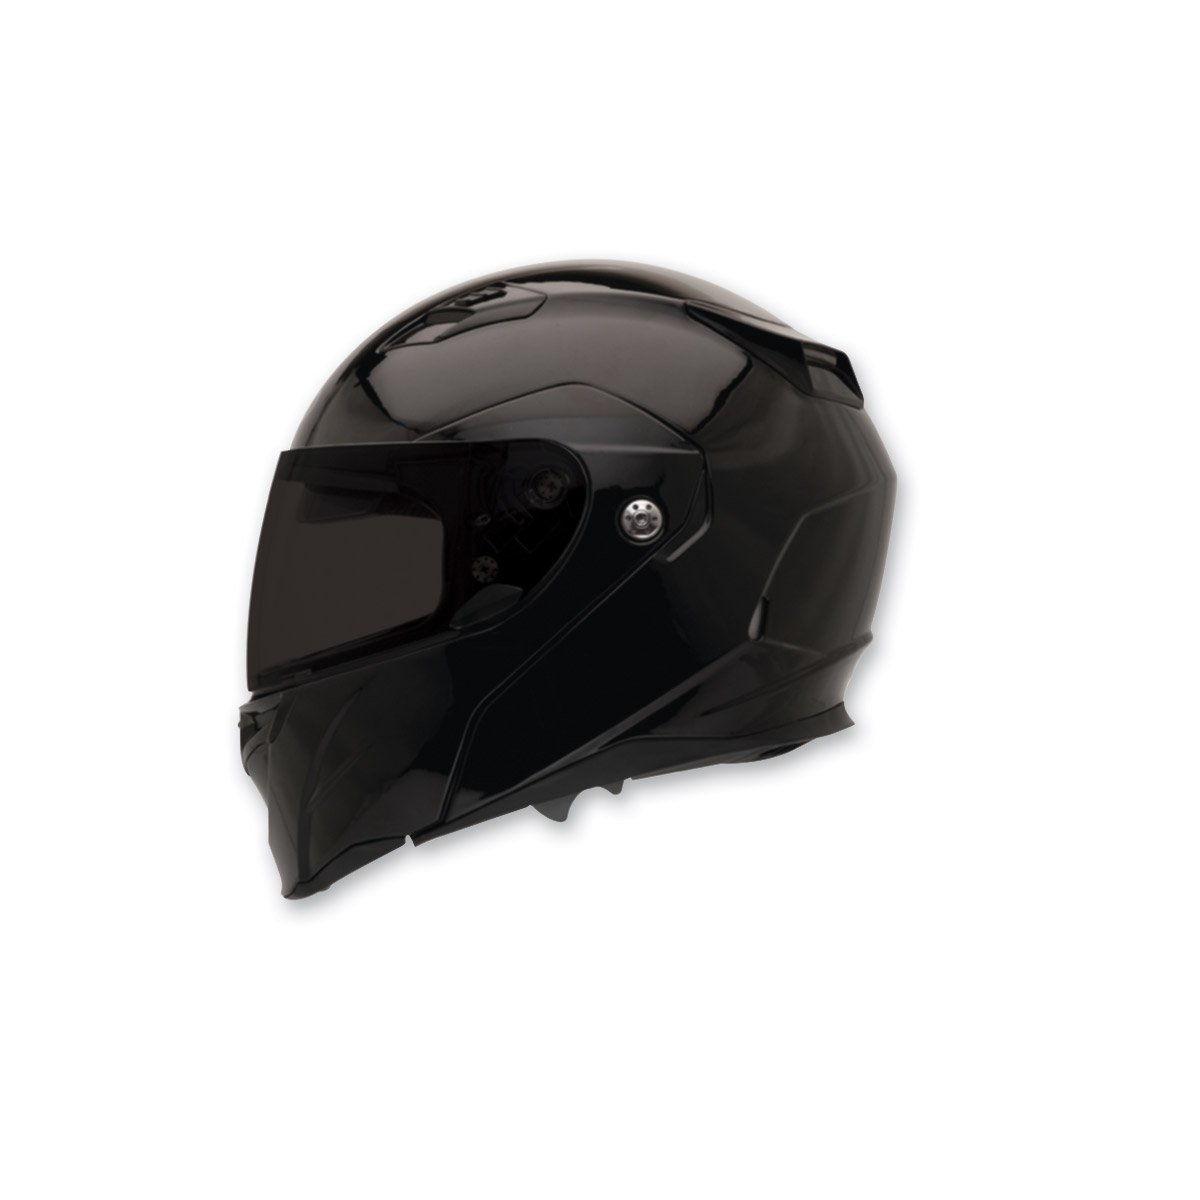 Amazon.com: Bell Revolver Evo Modular Motorcycle Helmet (Black, Large) (Non-Current Graphic): Automotive